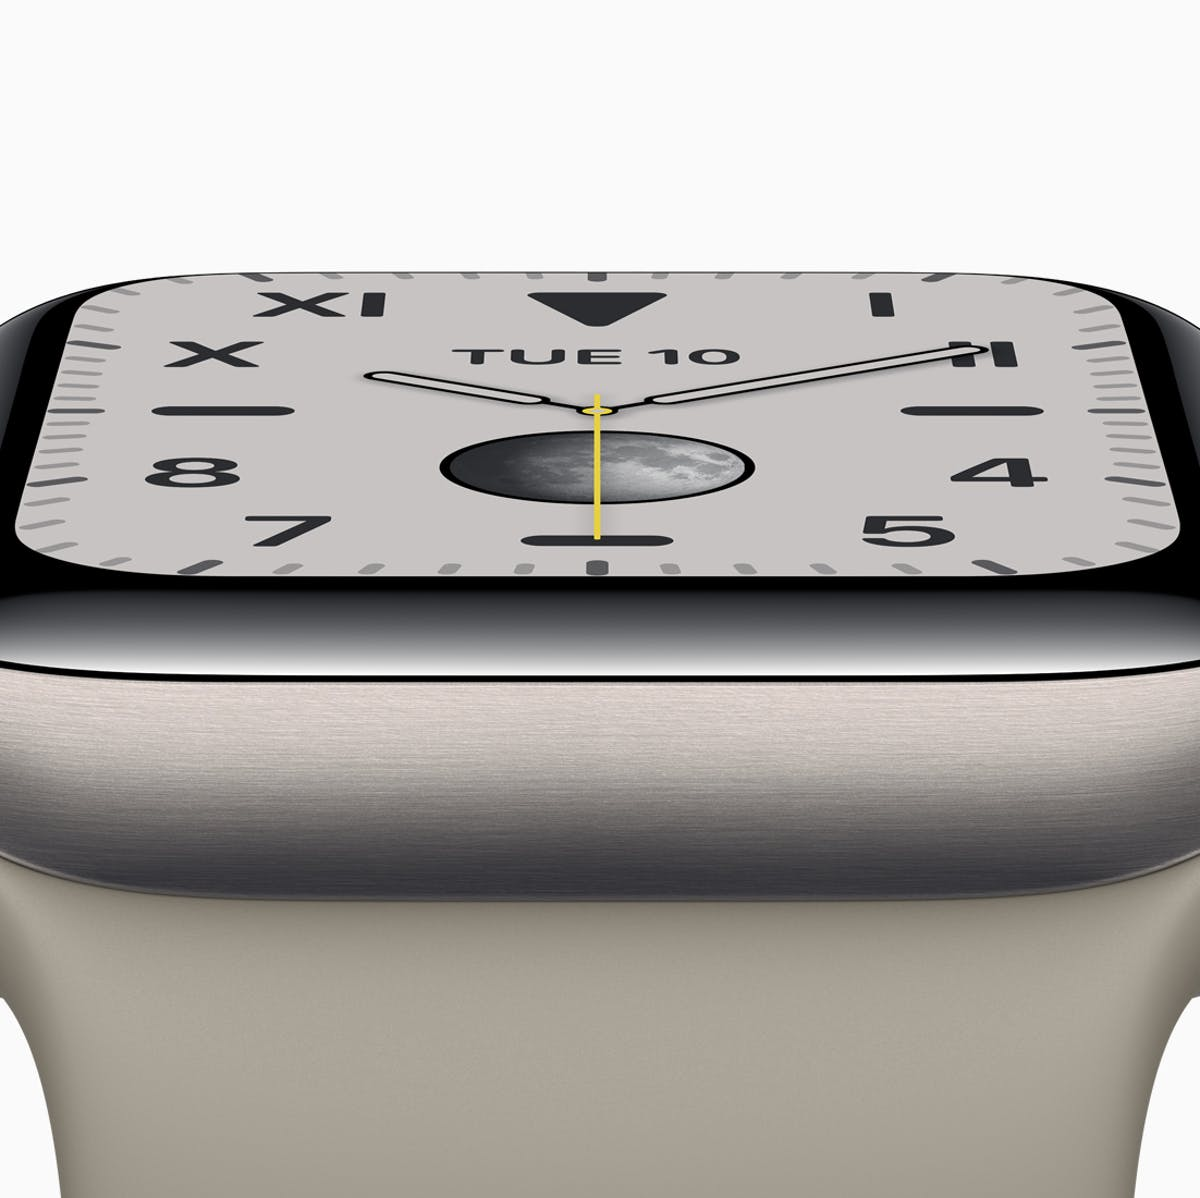 Apple Watch Series 5 Finally Solves the Gadget's Biggest Problem